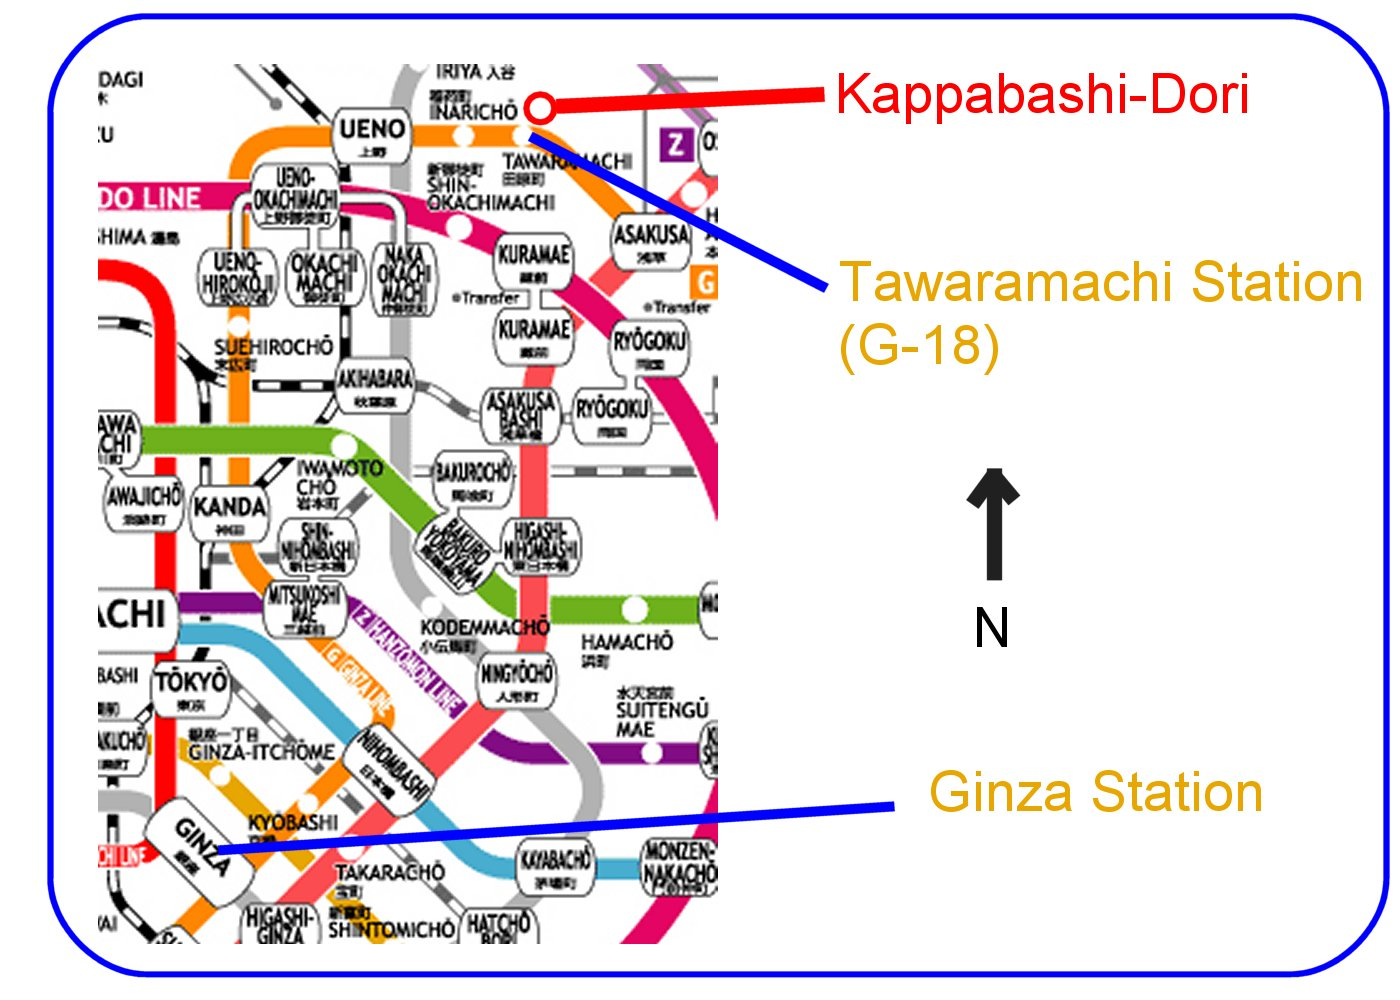 subway map directions with Kappabashi Kitchen Town on Map further Zion8 as well Kolkata Metro Map further Info page e further Train.